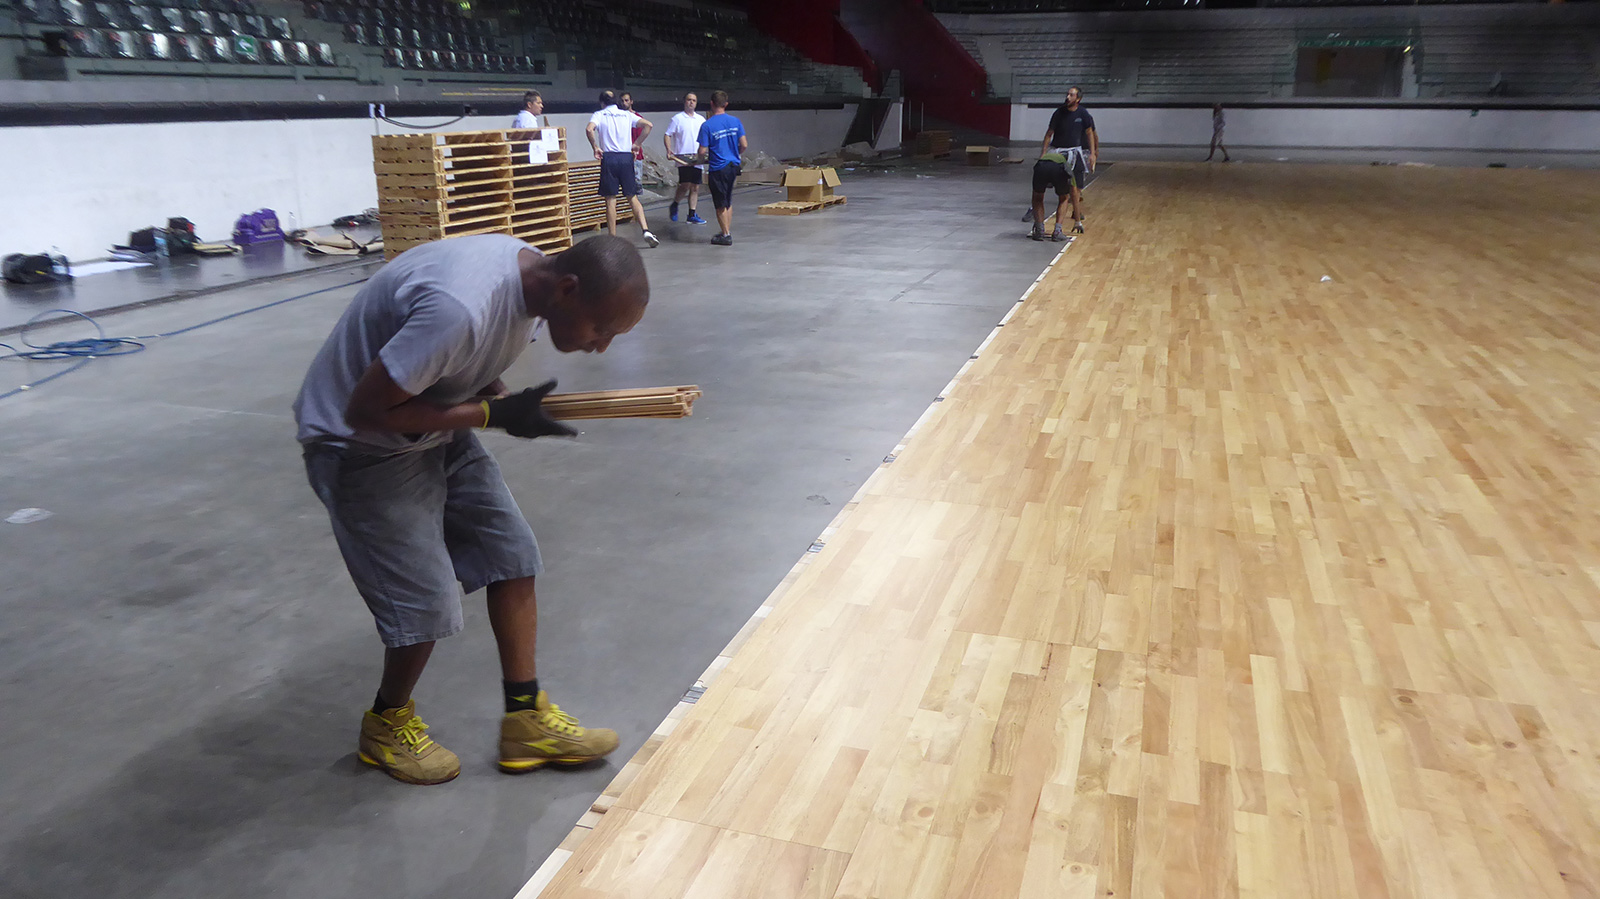 Laying the last row of removable parquet panels